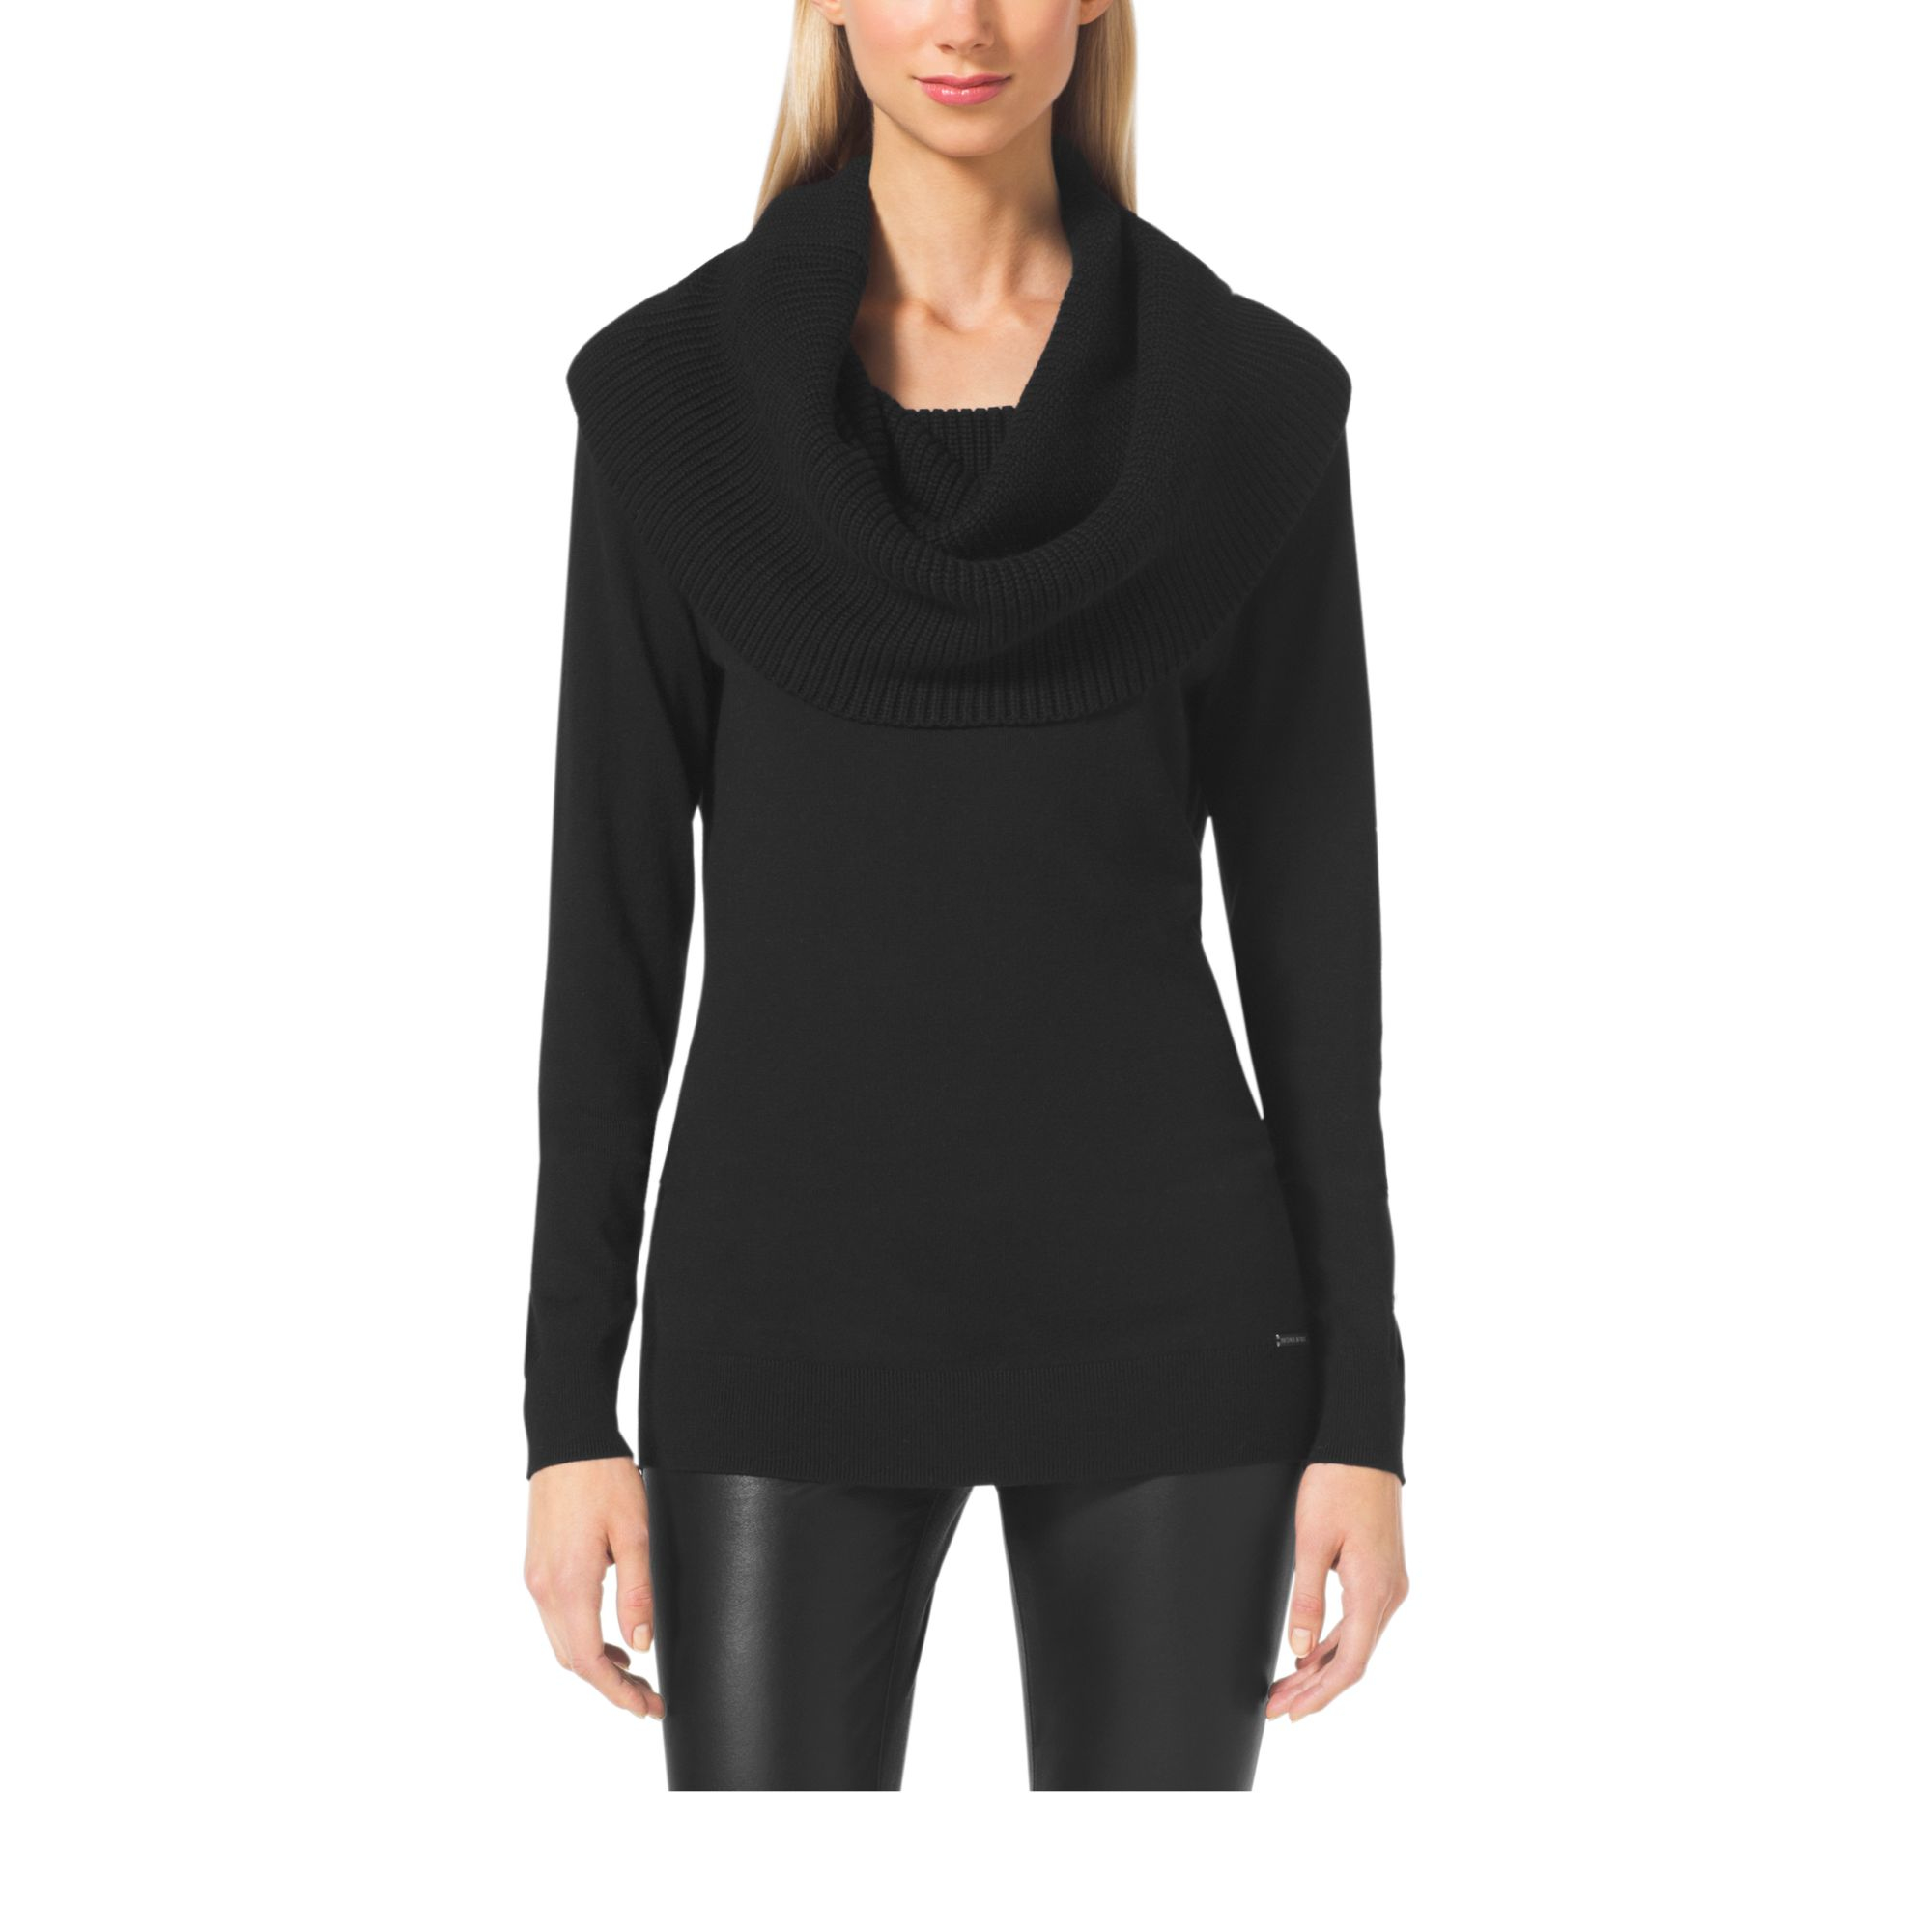 Michael kors Cowl-neck Sweater in Black | Lyst